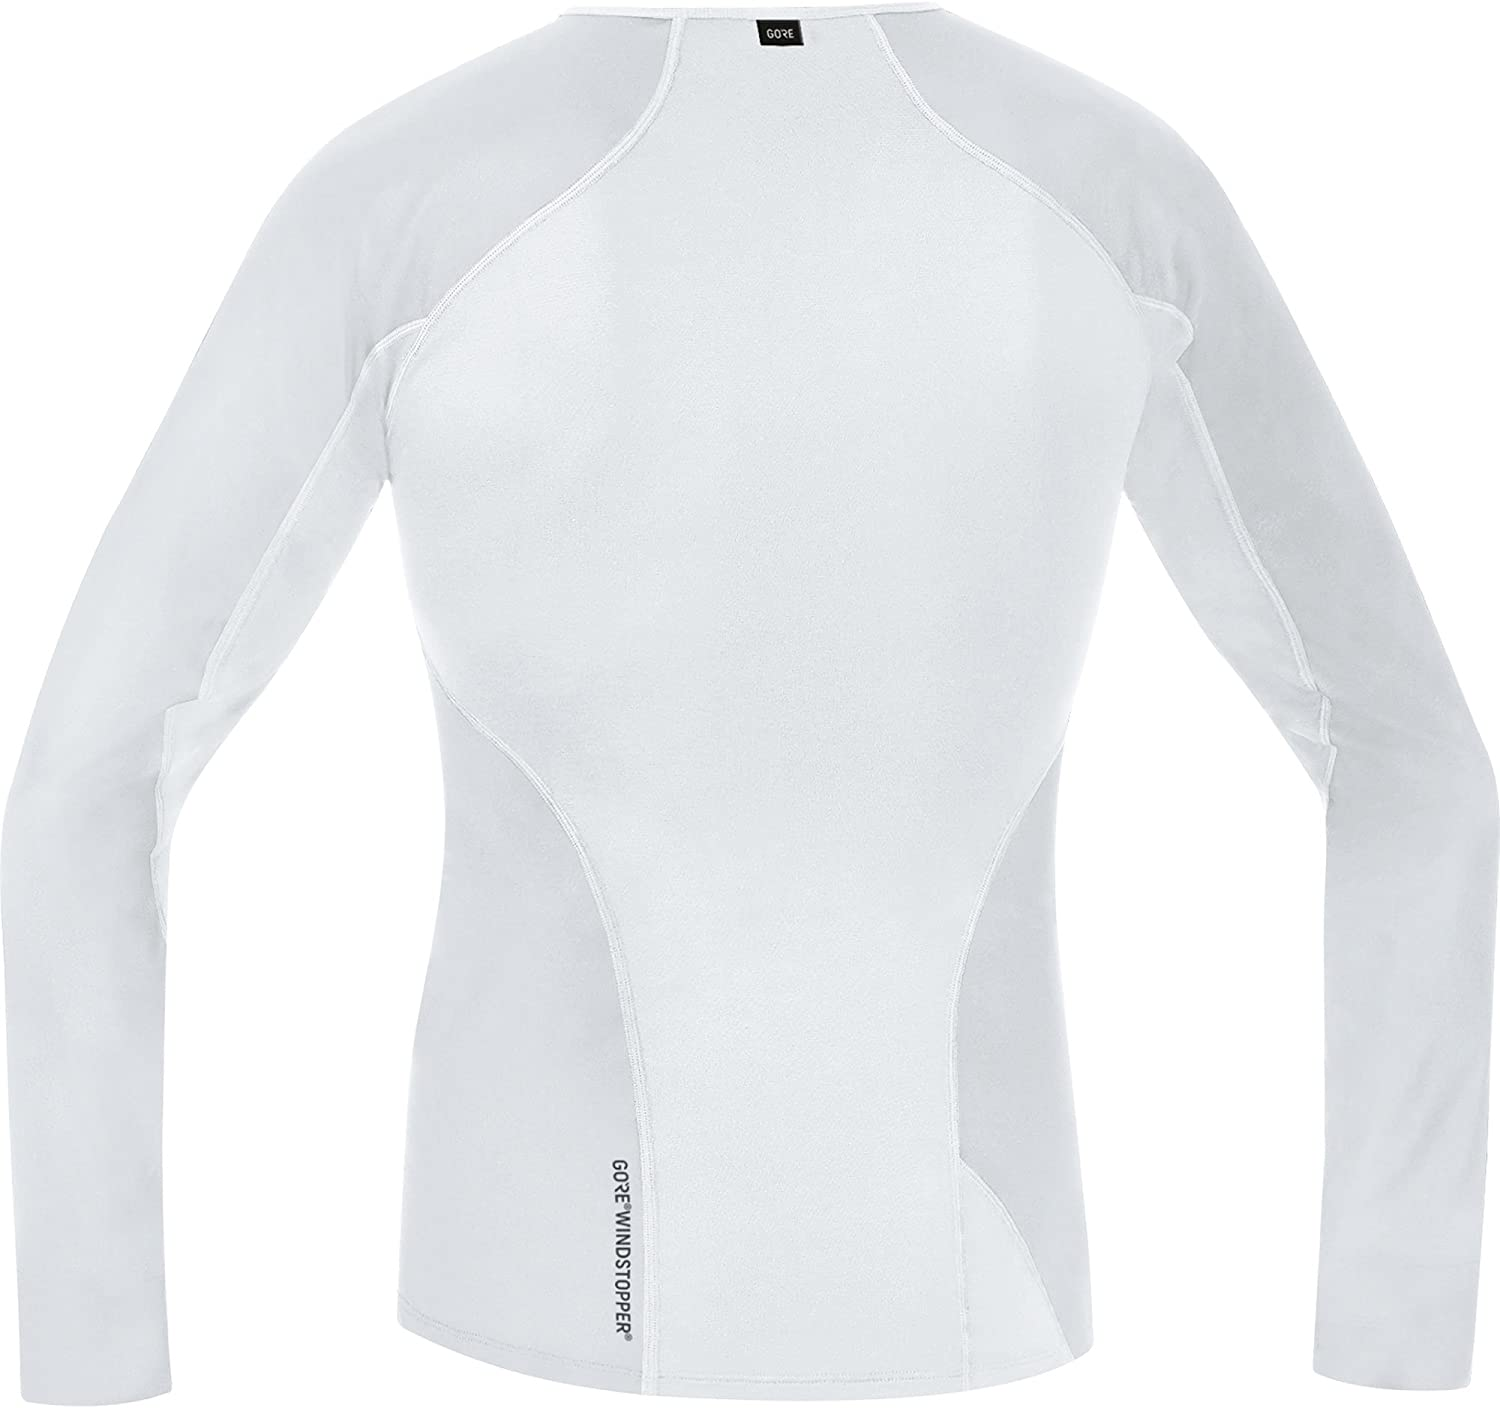 GORE WEAR 100324 Maillot Homme Gris Clair//Blanc FR Taille Fabricant : L L